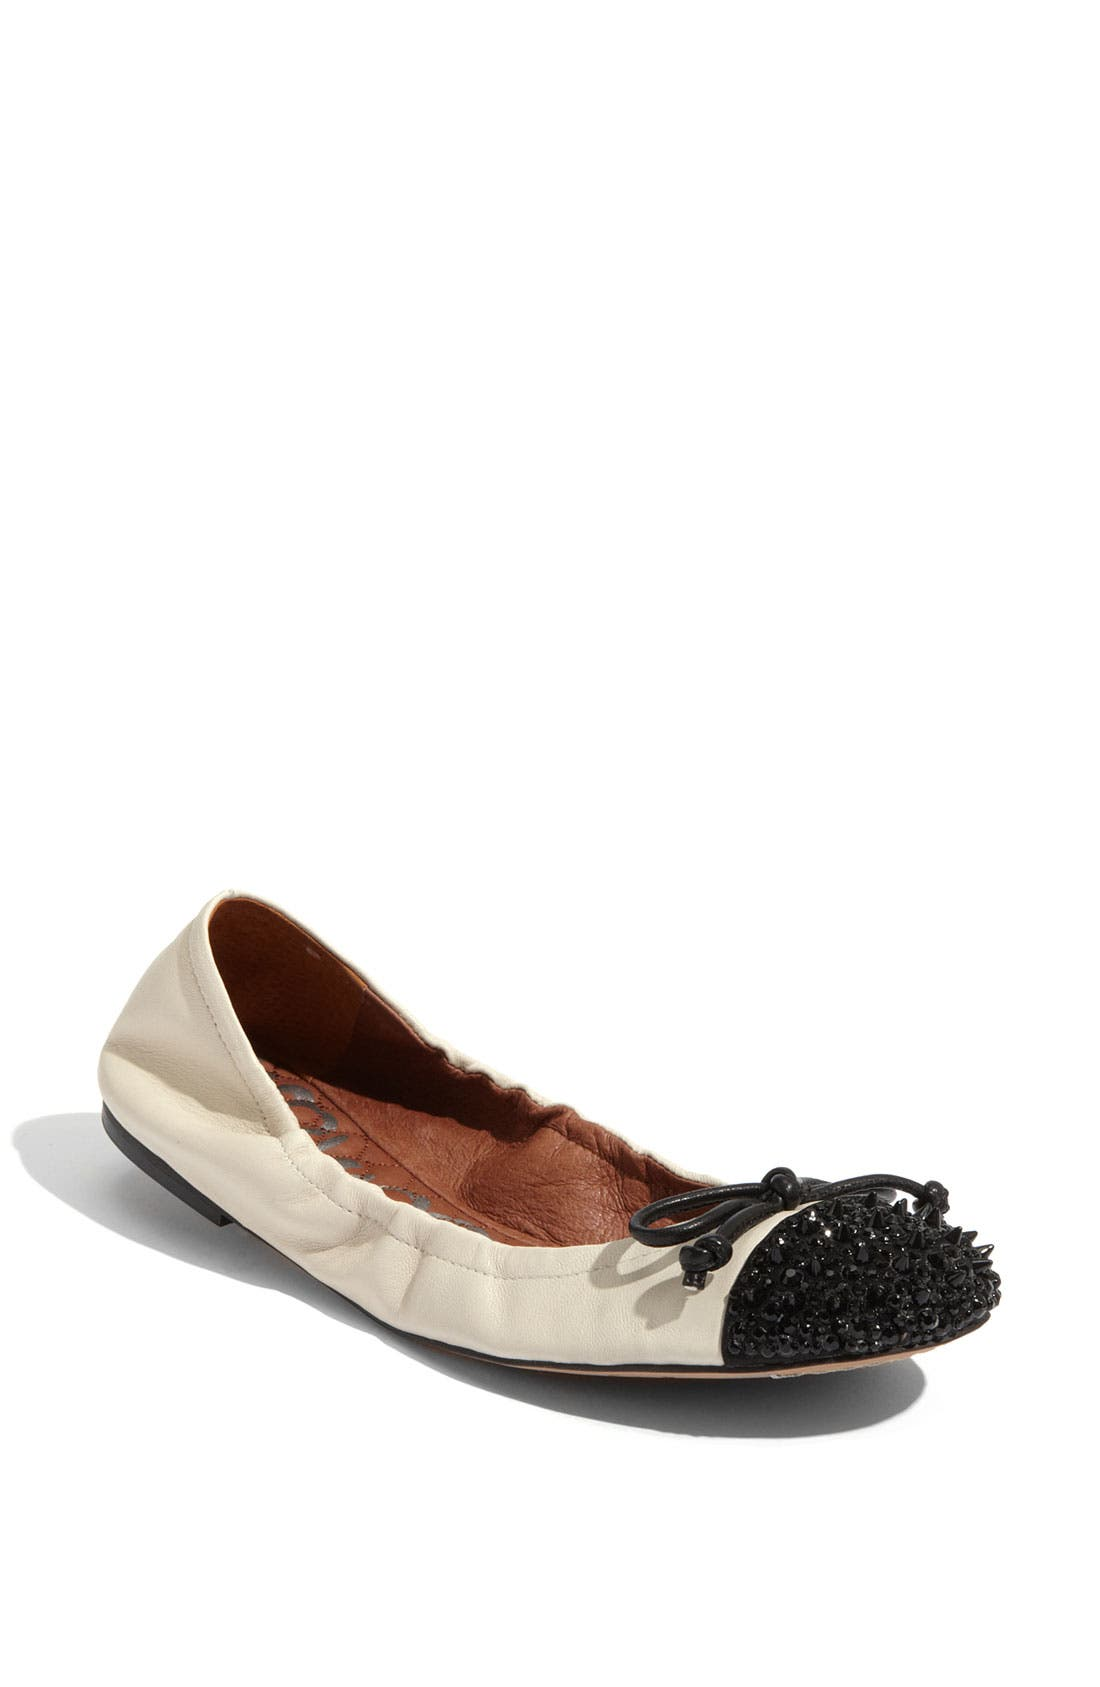 Alternate Image 1 Selected - Sam Edelman 'Beatrix' Flat